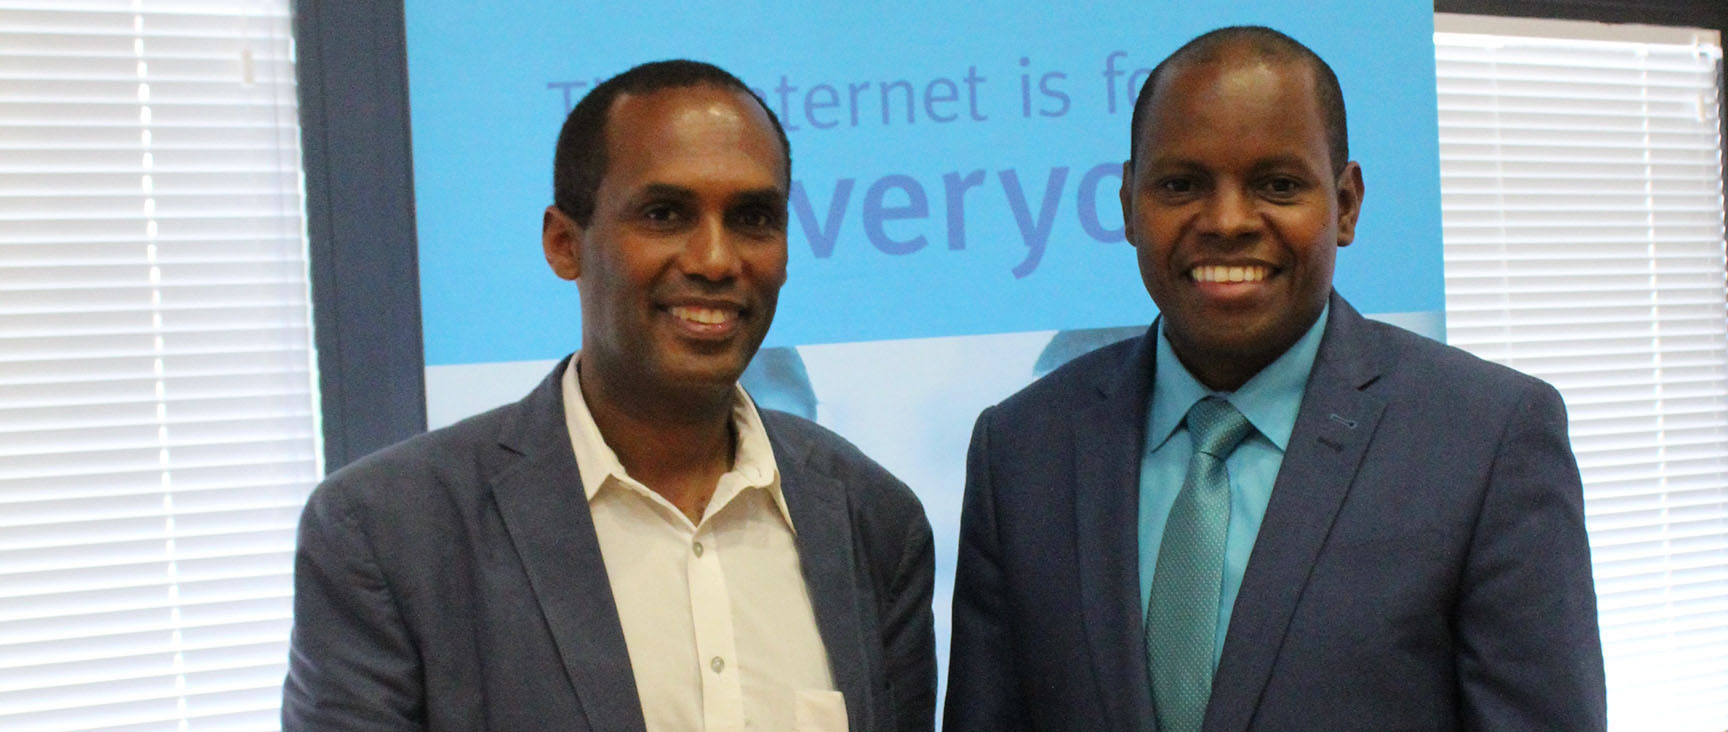 Internet Society to Partner with Economic Community of West African States to Promote an Open, Trusted Internet Thumbnail